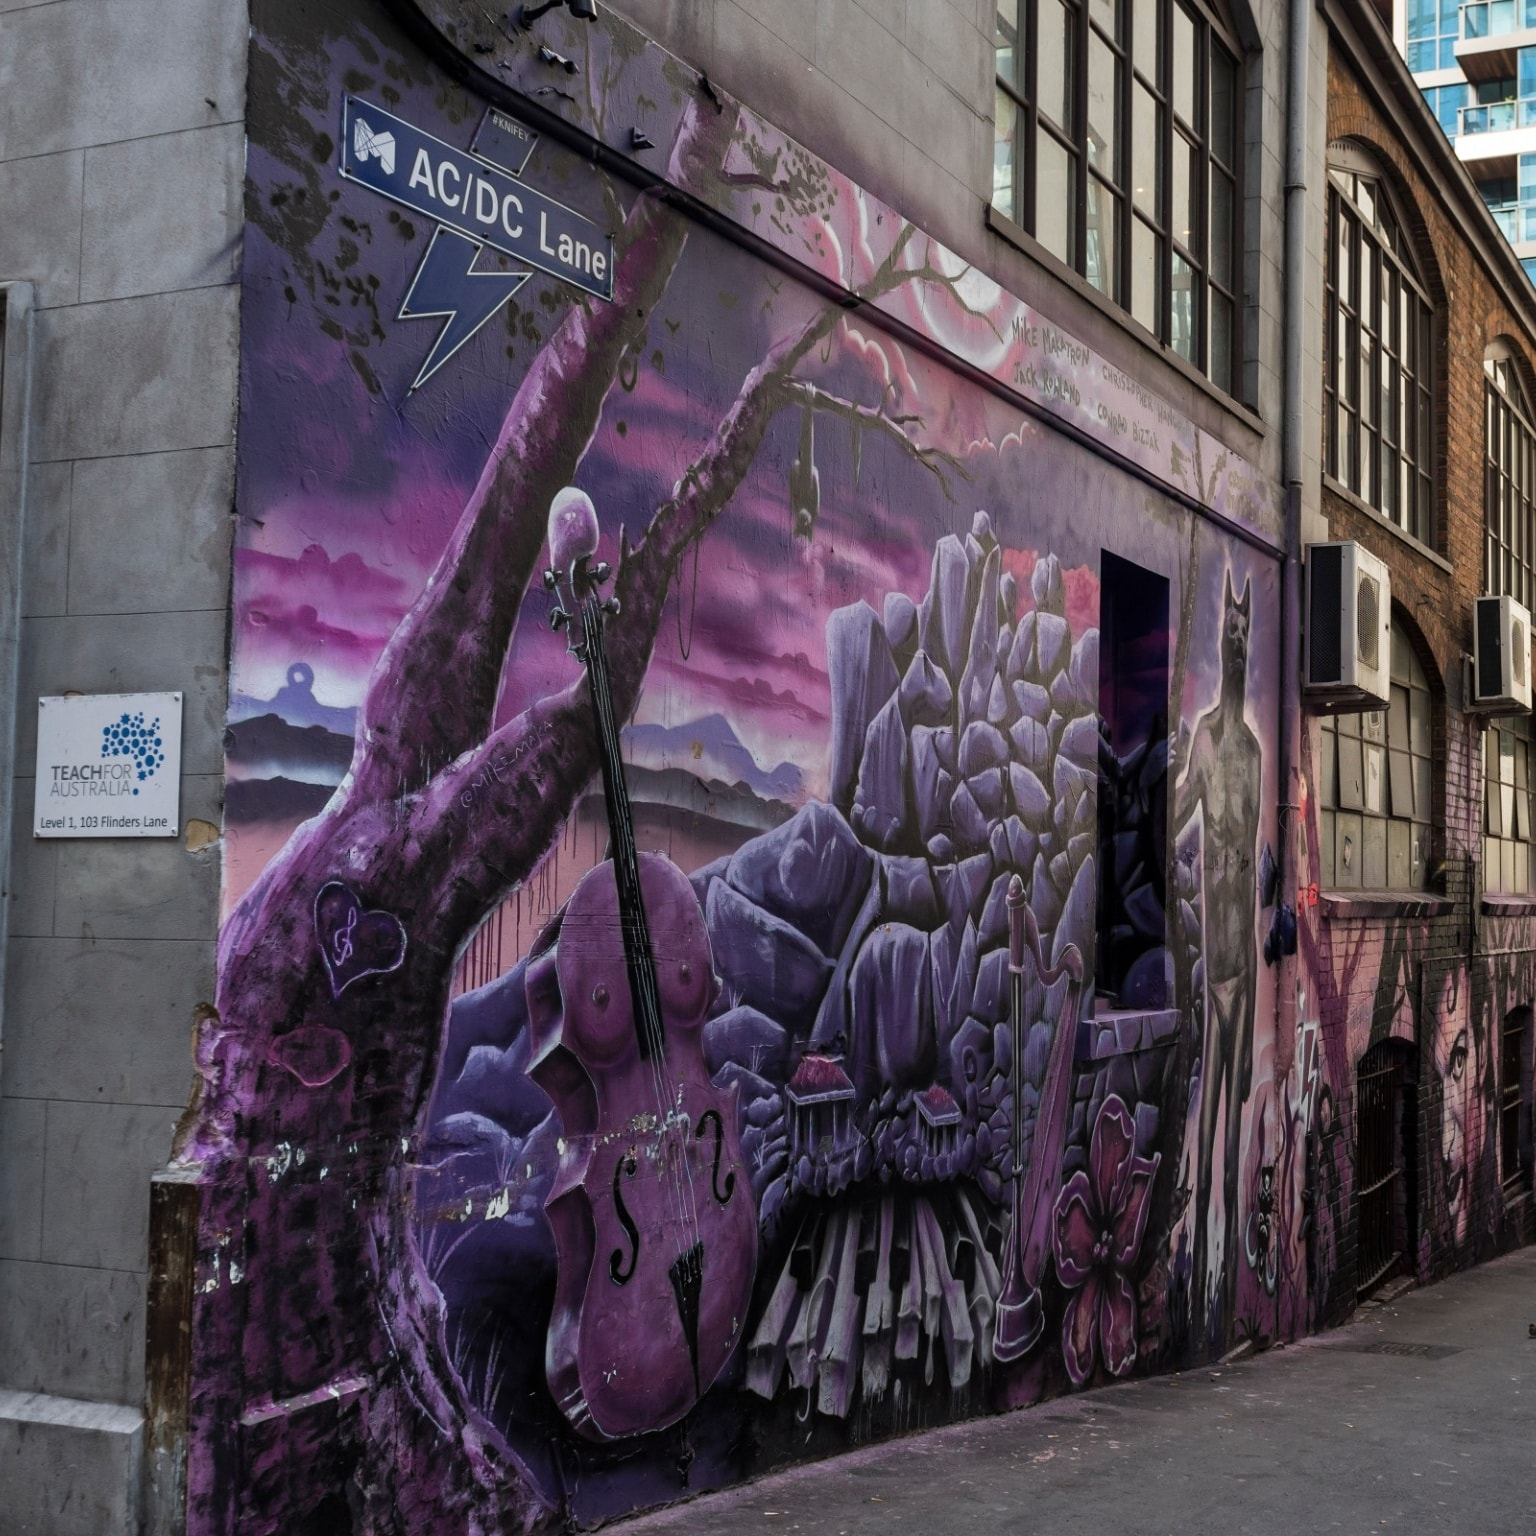 Graffitied ACDC lane in Melbourne © Visit Victoria